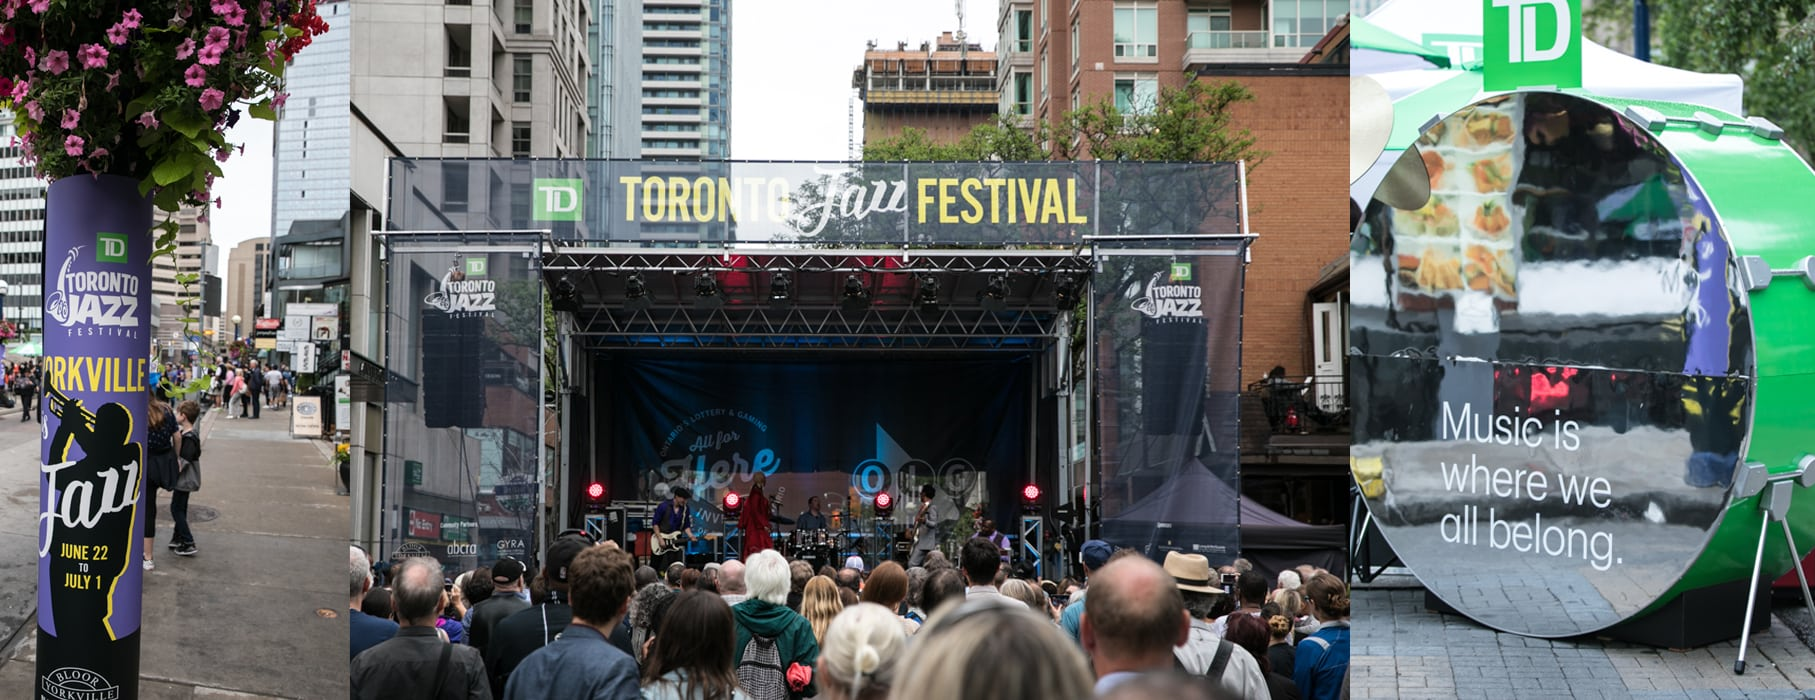 Thousands Flocked to Bloor-Yorkville for the TD Toronto Jazz Festival